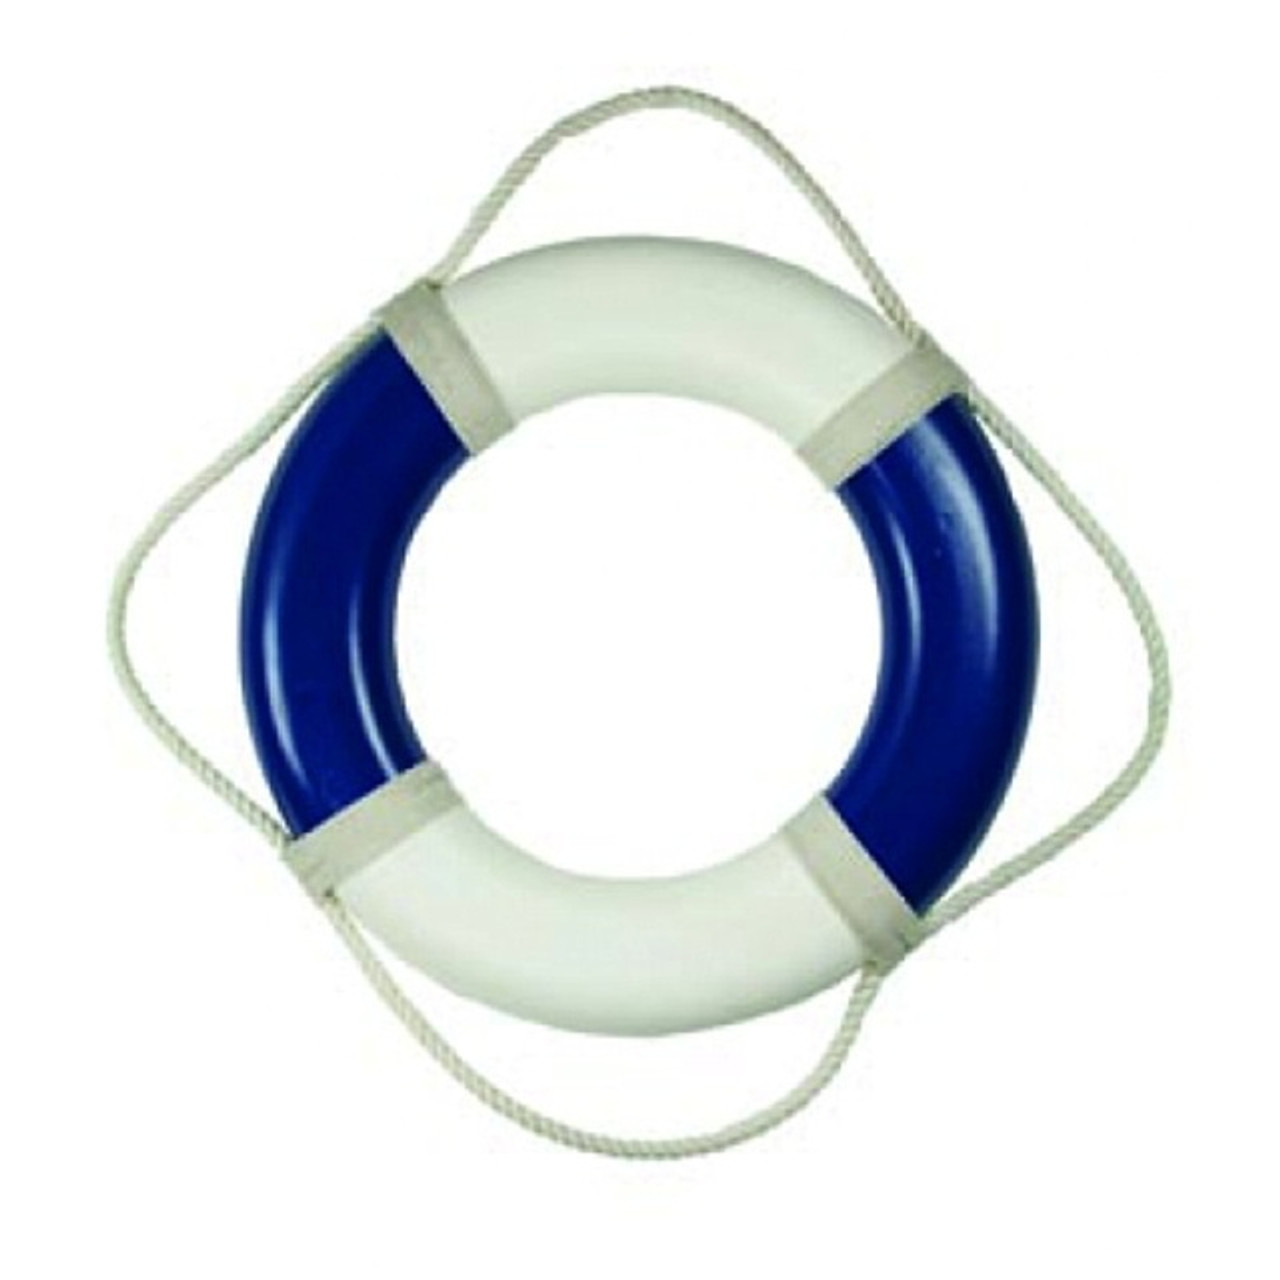 20 plain vinyl nautical